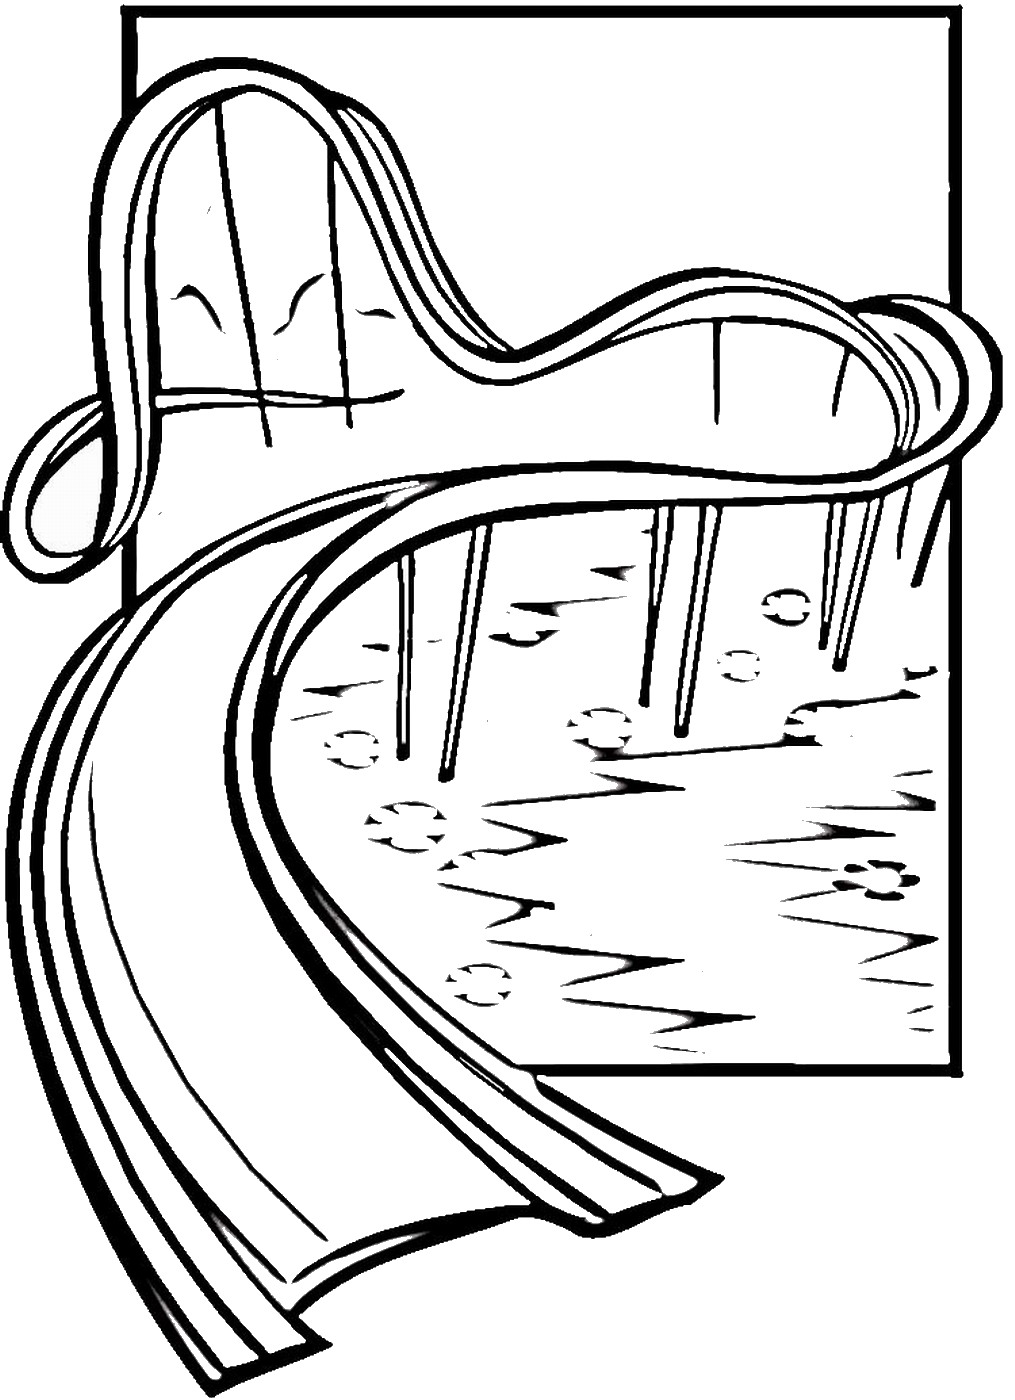 1015x1400 Water Slide Coloring Pages Water Slide Cartoon